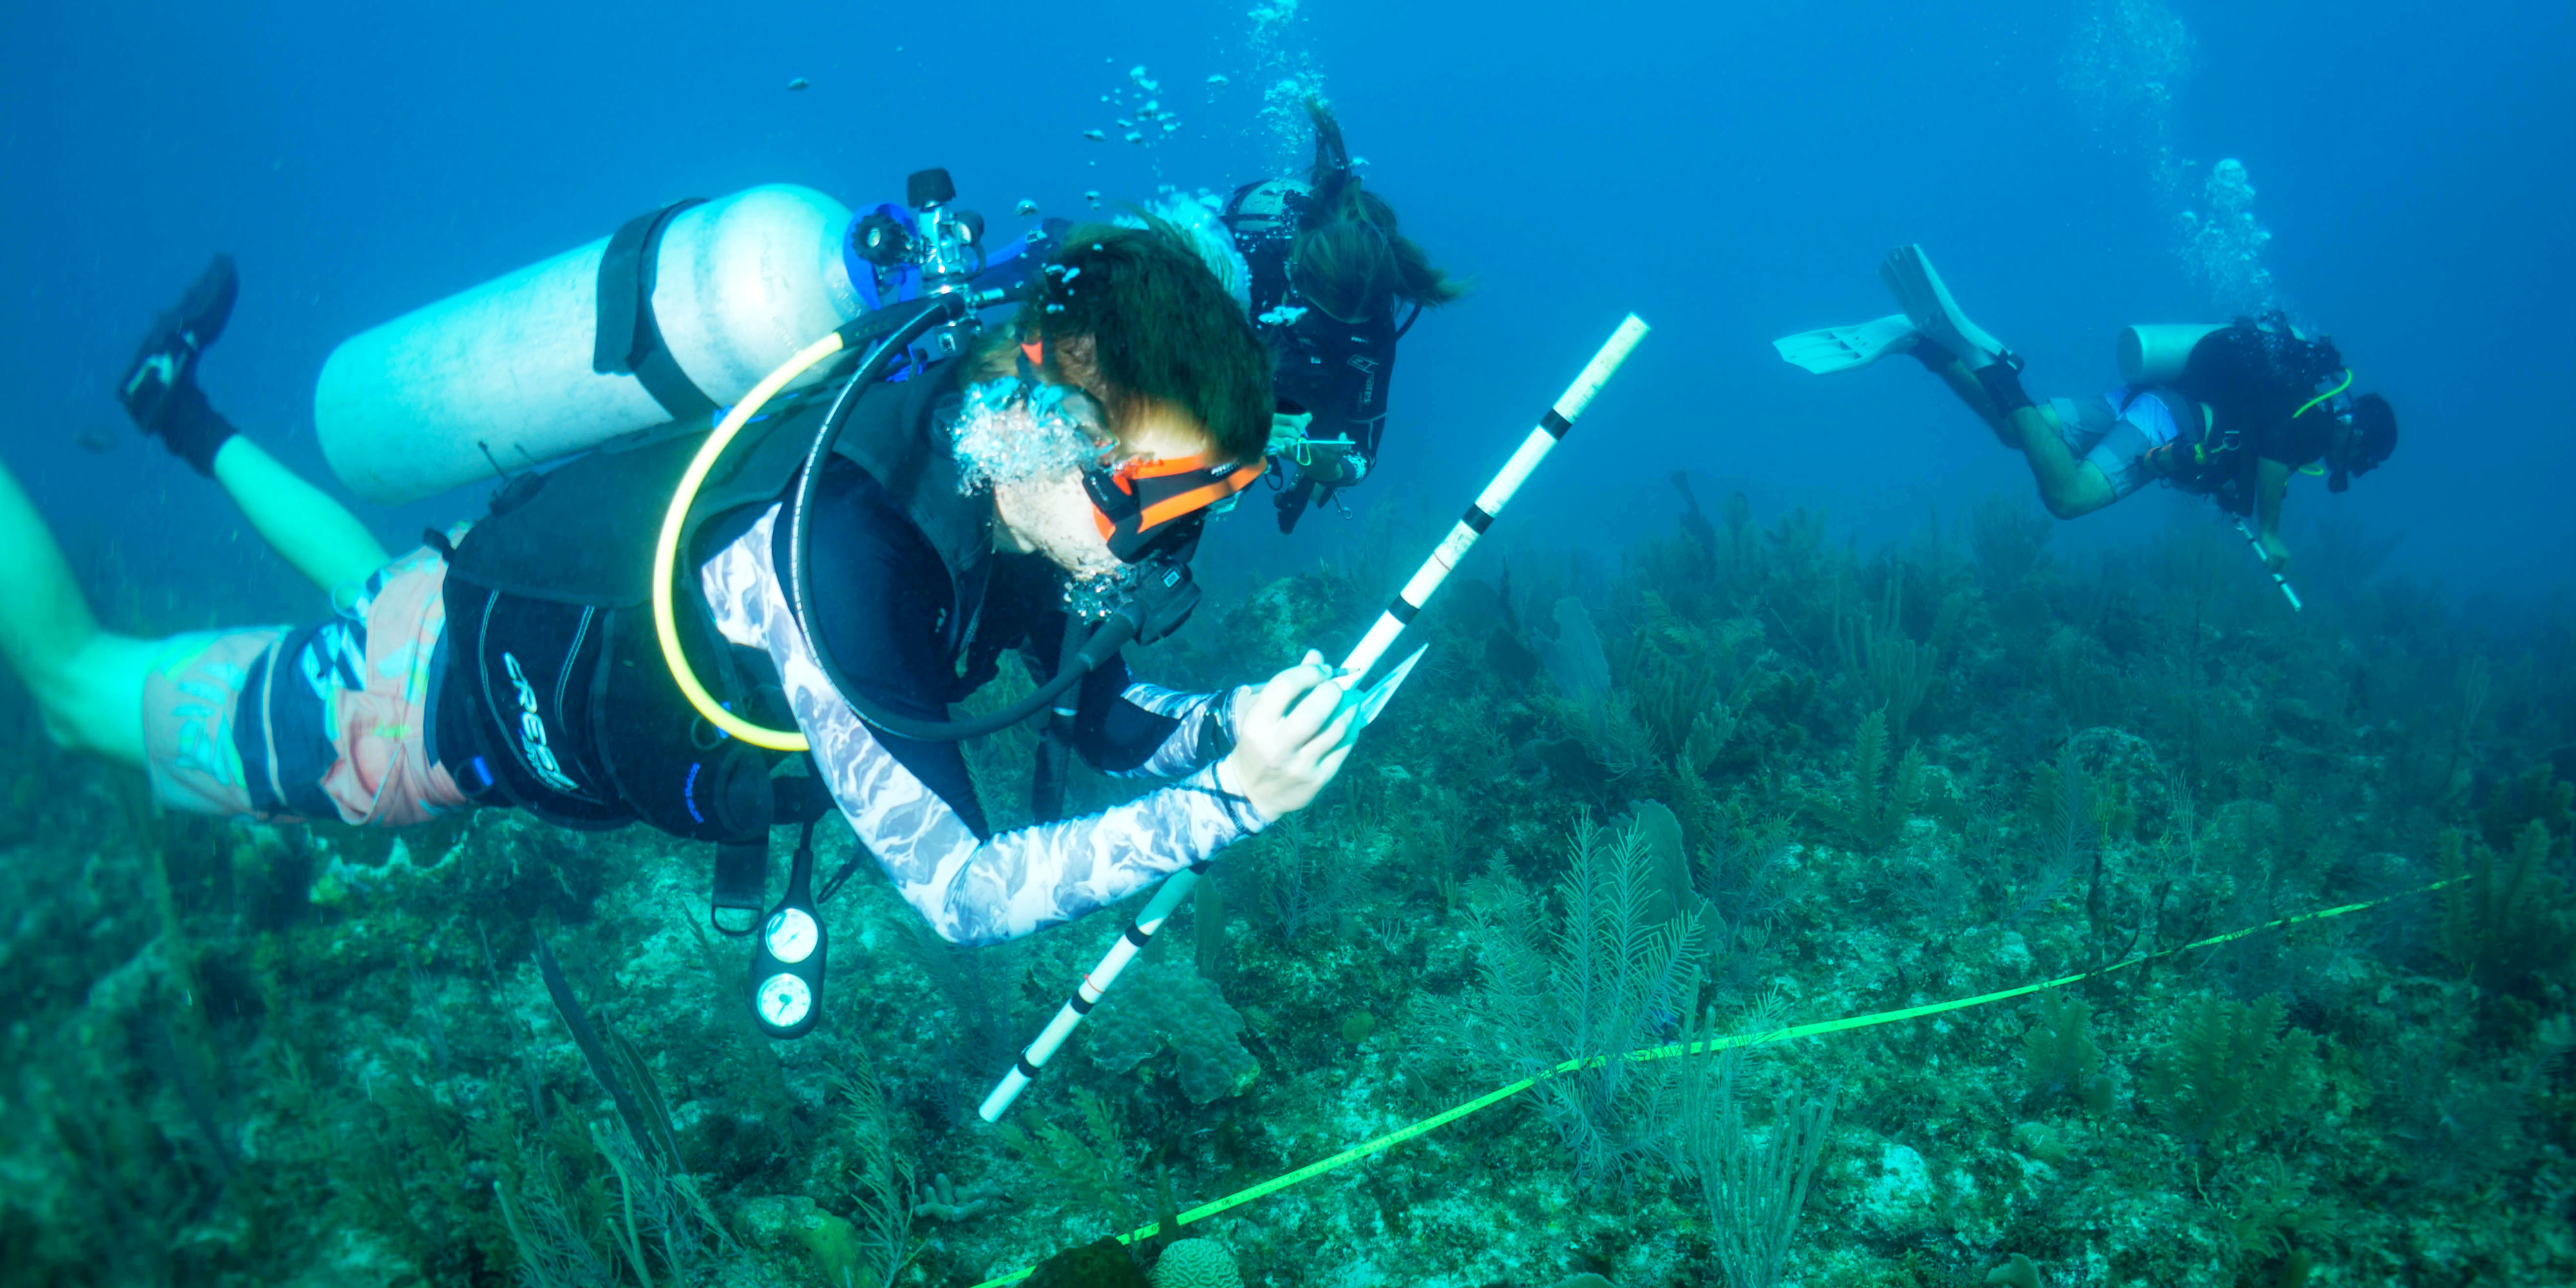 A GVI participant records information on marine species along the Mesoamerican Barrier Reef System. This data is used to inform marine conservation research in the region.